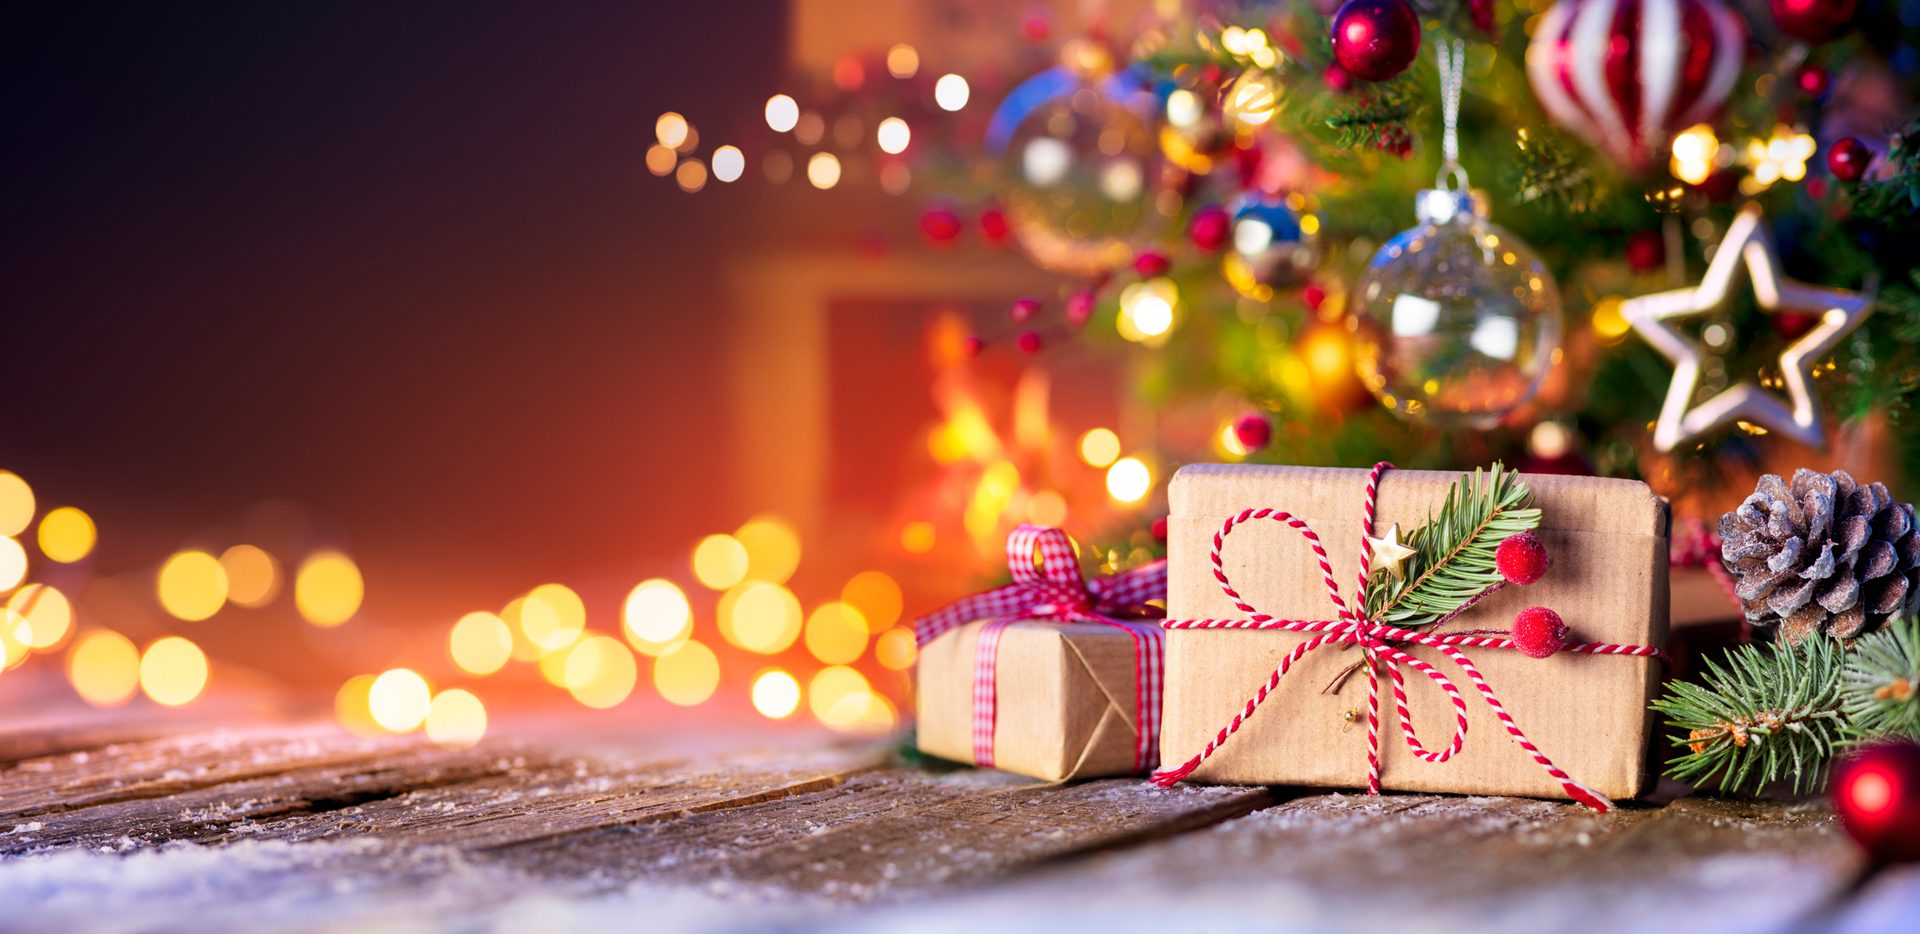 A Merry Christmas & Happy New Year